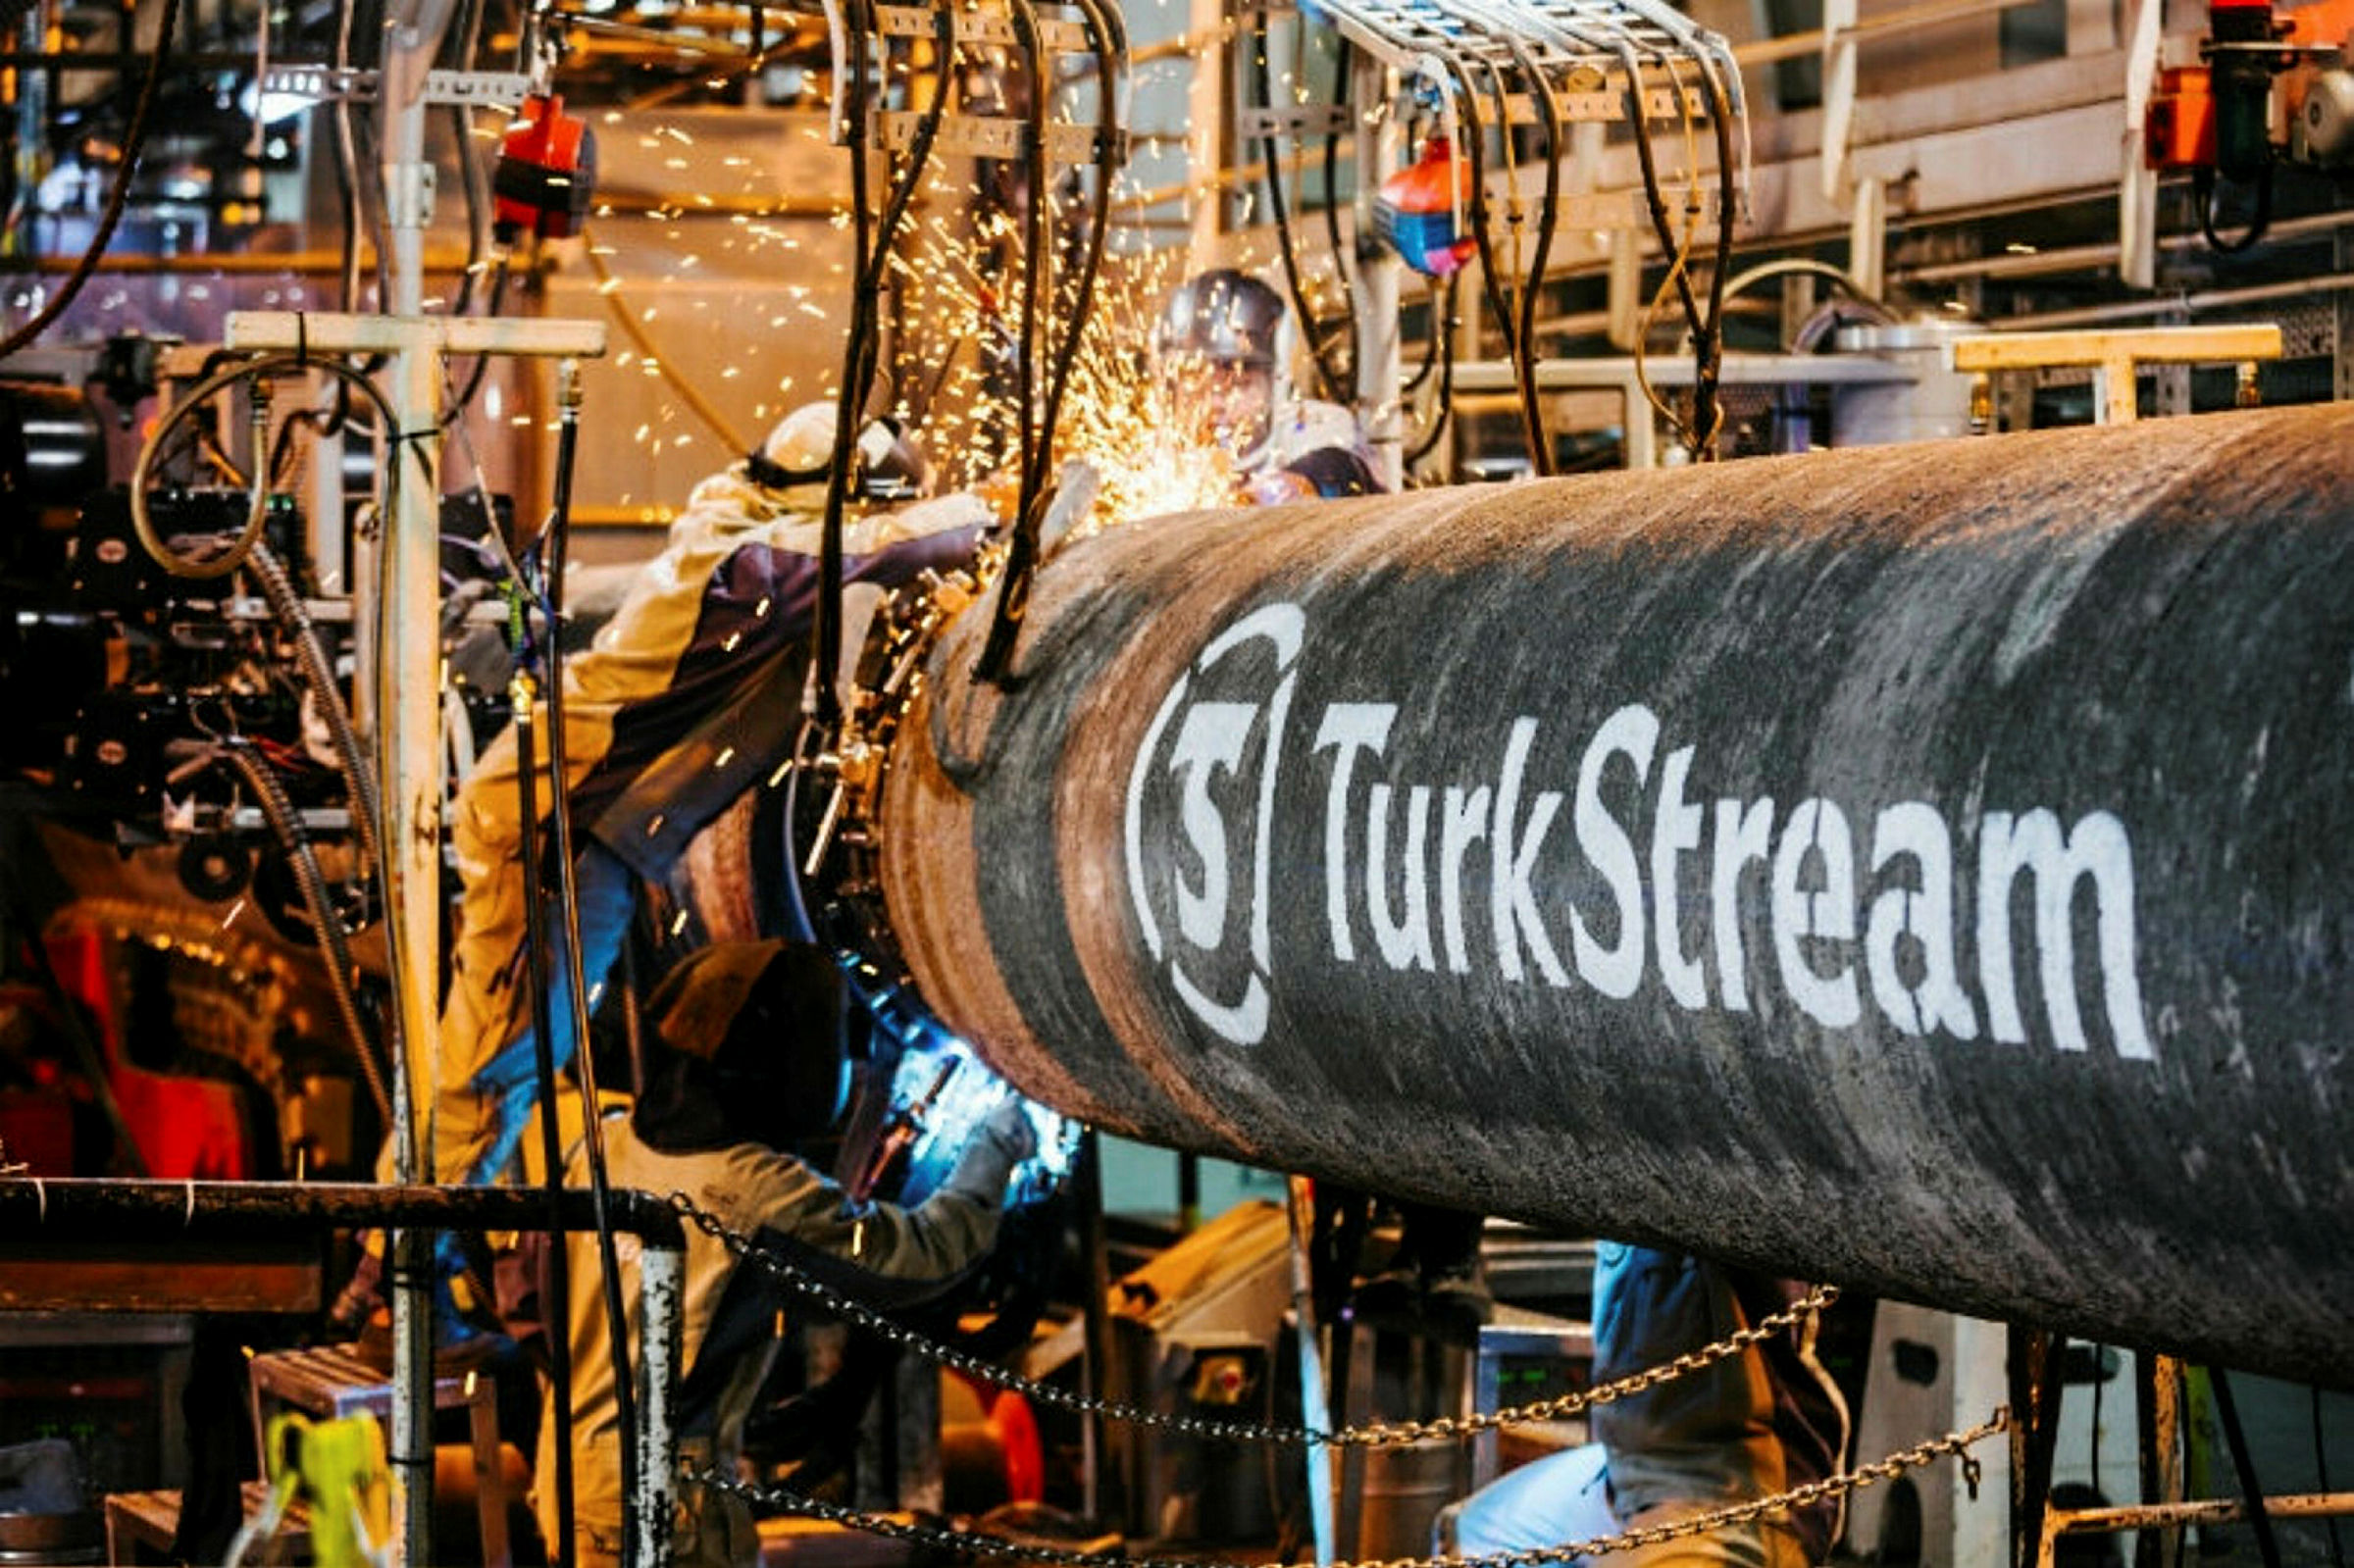 Turkish Stream enters final stage of completion